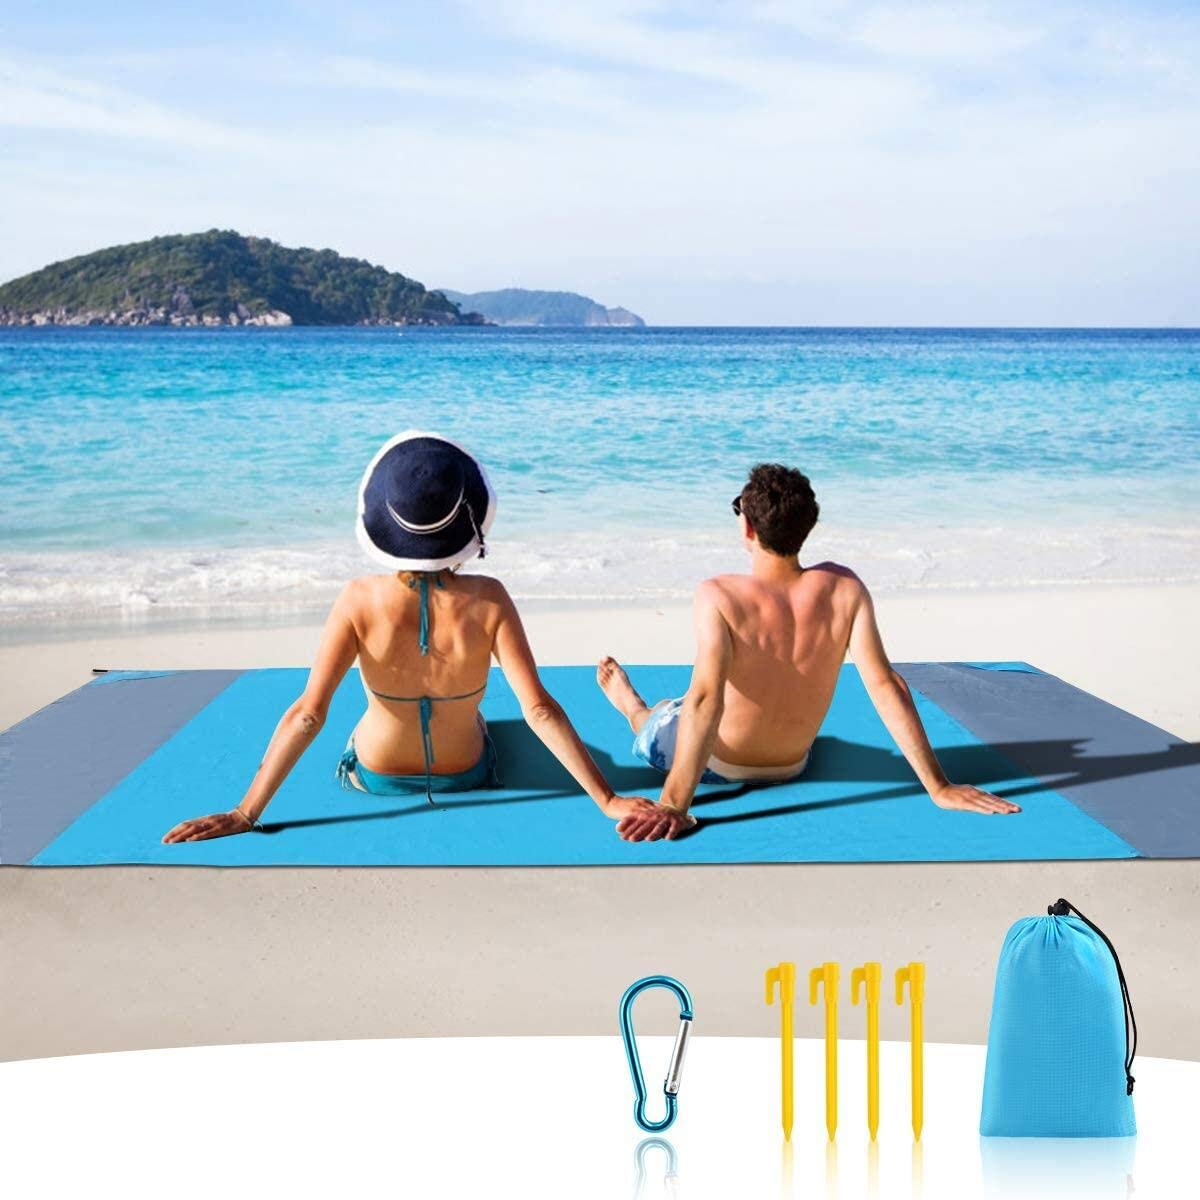 MILIER Beach Blanket Waterproof Beach Mat Sand Proof Beach Blanket Picnic Mat with Anchor for Travel, Camping, Hiking, 210cmx200cm